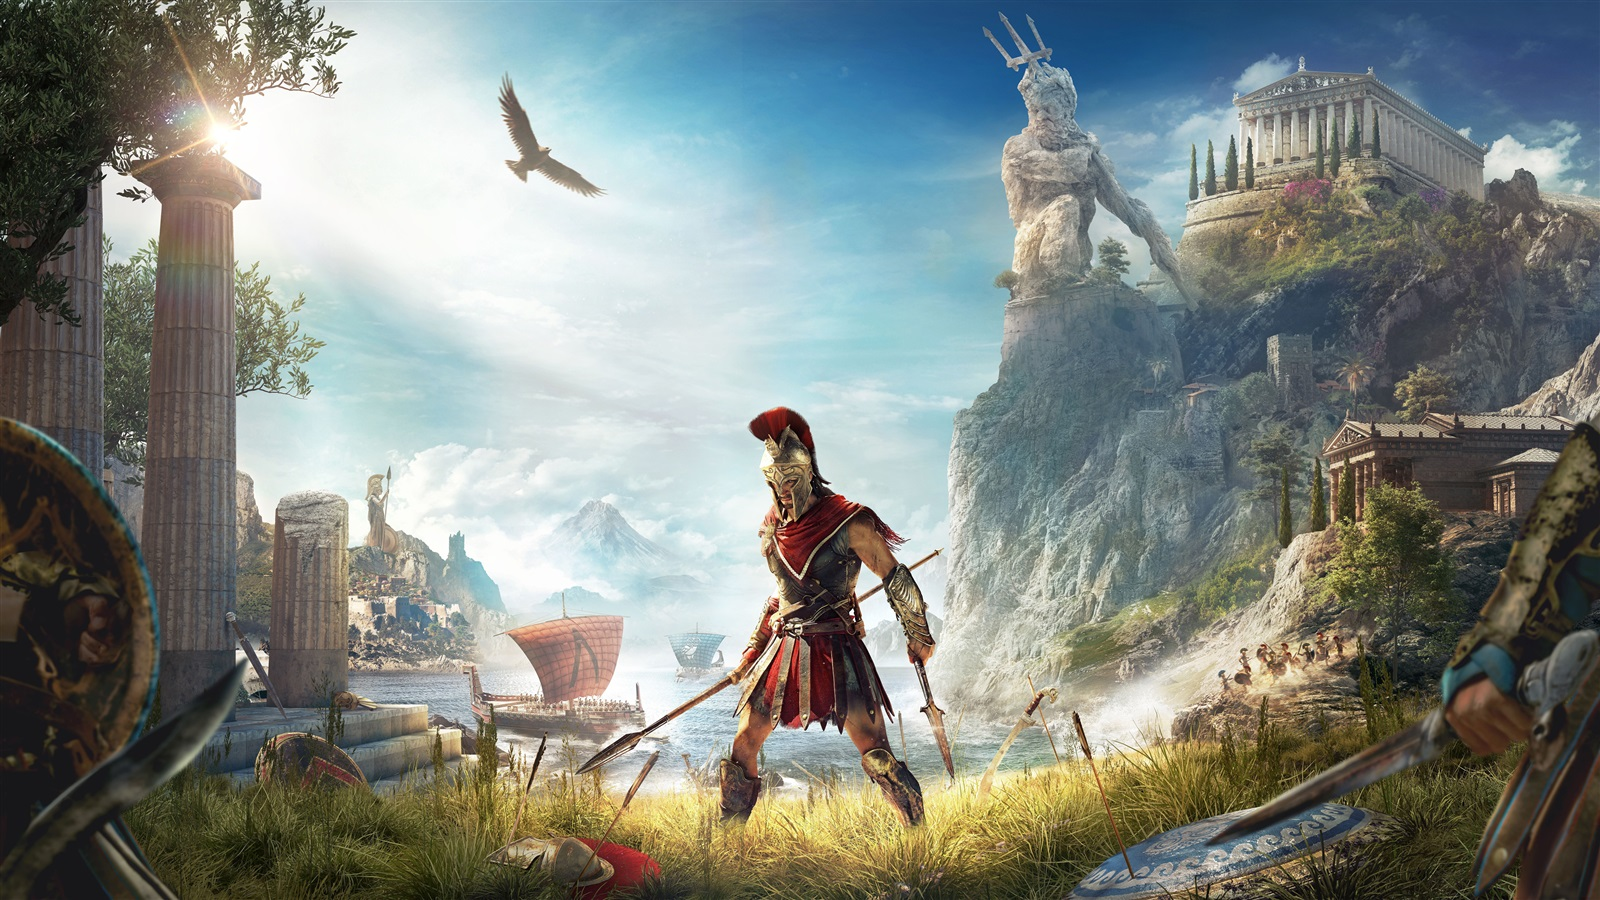 Best Black Wallpaper For Iphone X Wallpaper Assassin S Creed Odyssey E3 2018 3840x2160 Uhd